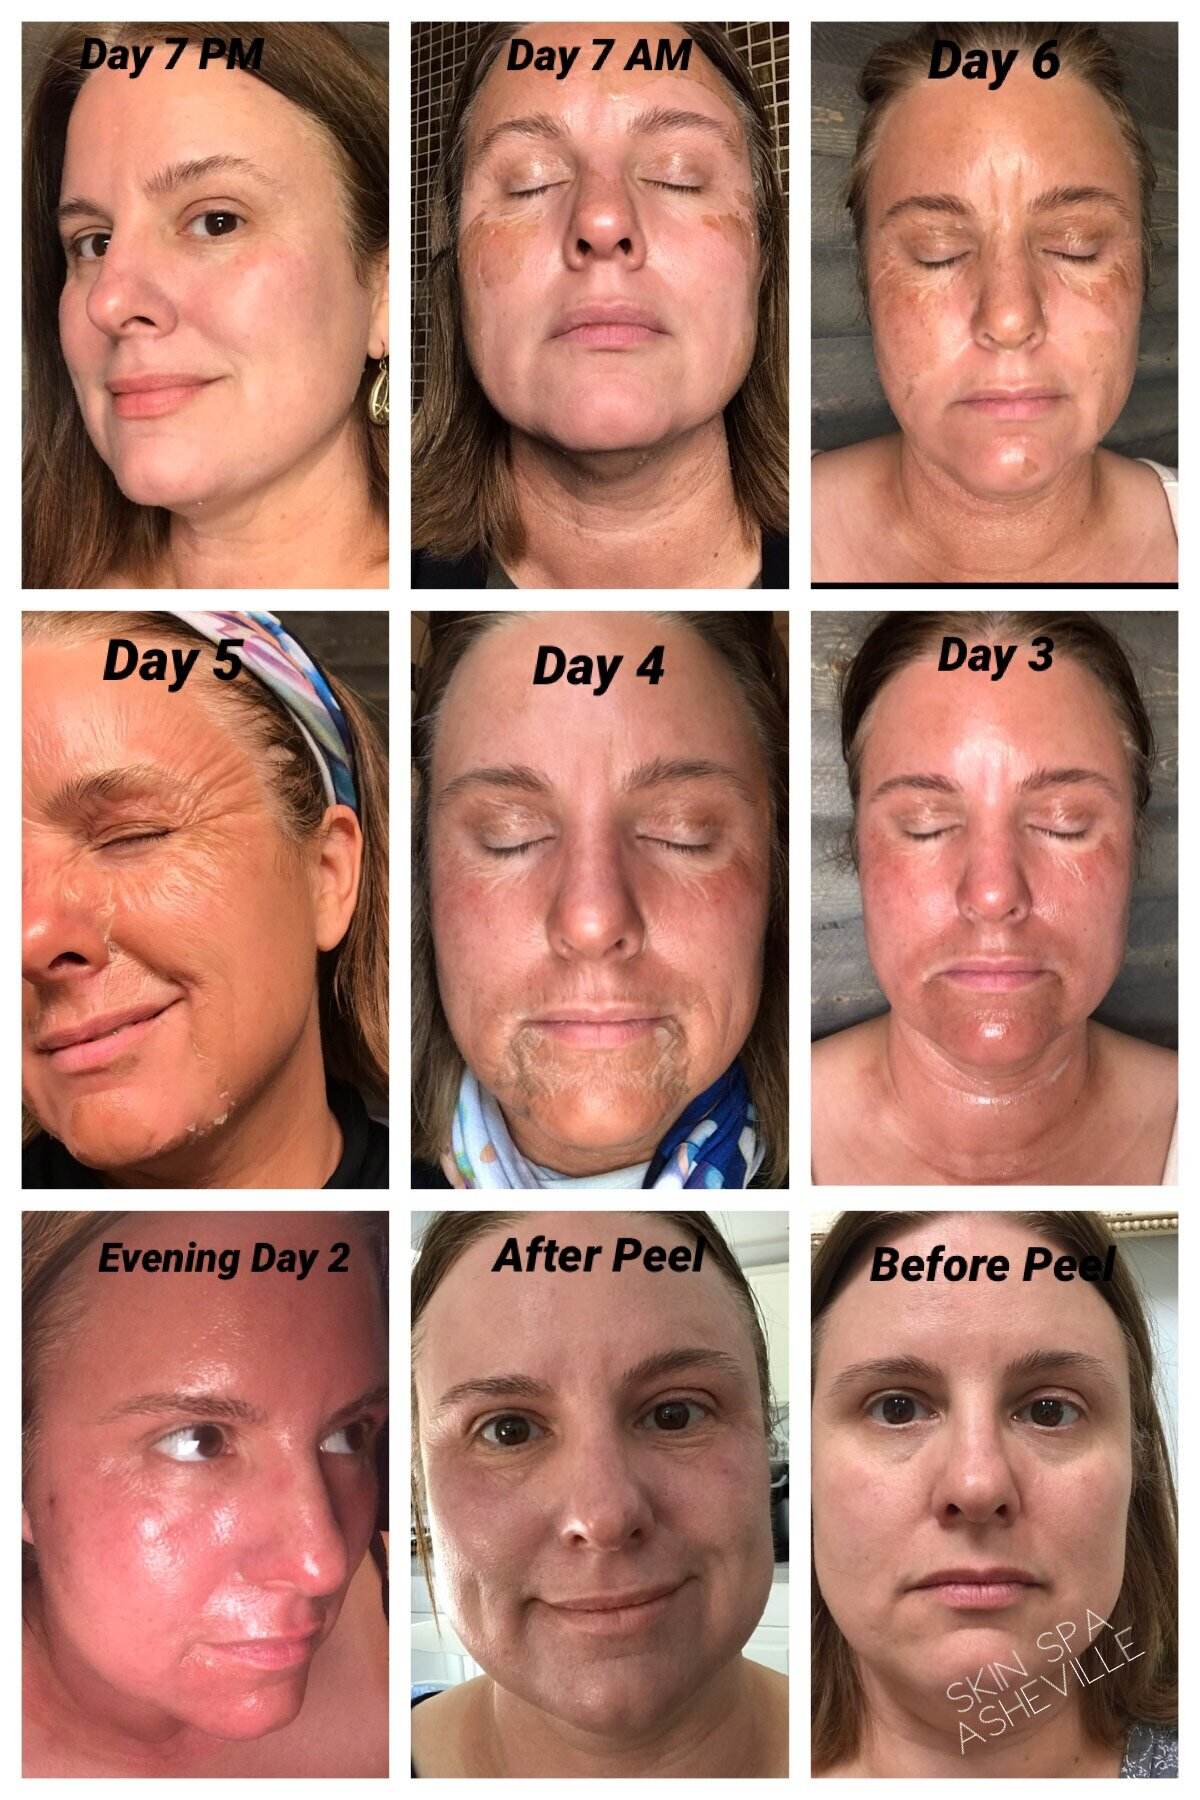 *The photos show The Skin Renewal peeling process with the day of the 1st peel application through to the finally day when all the skin is peeled off.